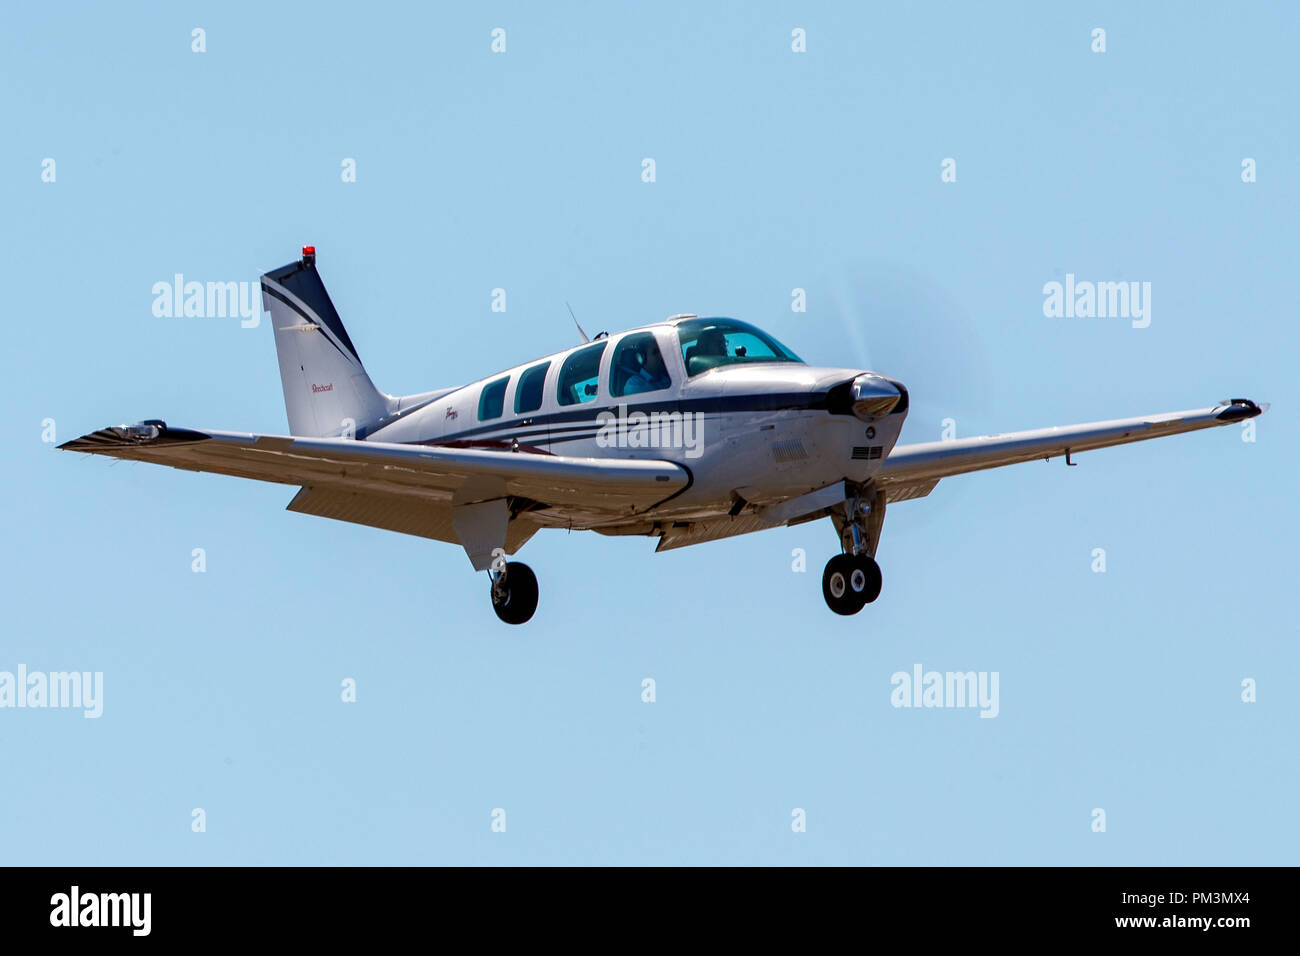 Beech A36 Bonanza (N70HC) on approach to Palo Alto Airport (KPAO), Palo Alto, California, United States of America - Stock Image